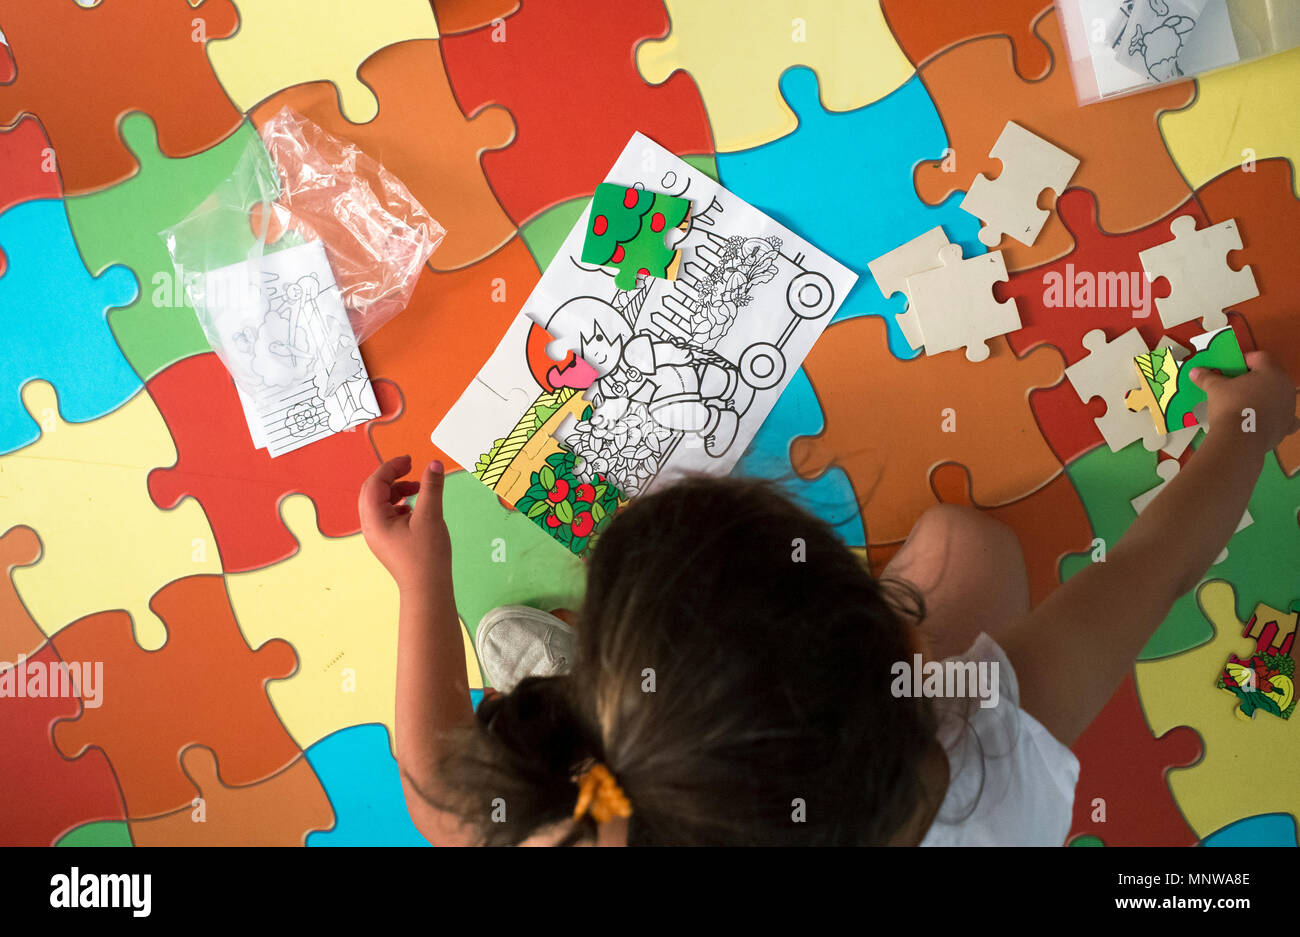 Teppich Puzzle Design Puzzle Carpet Stockfotos Puzzle Carpet Bilder Alamy